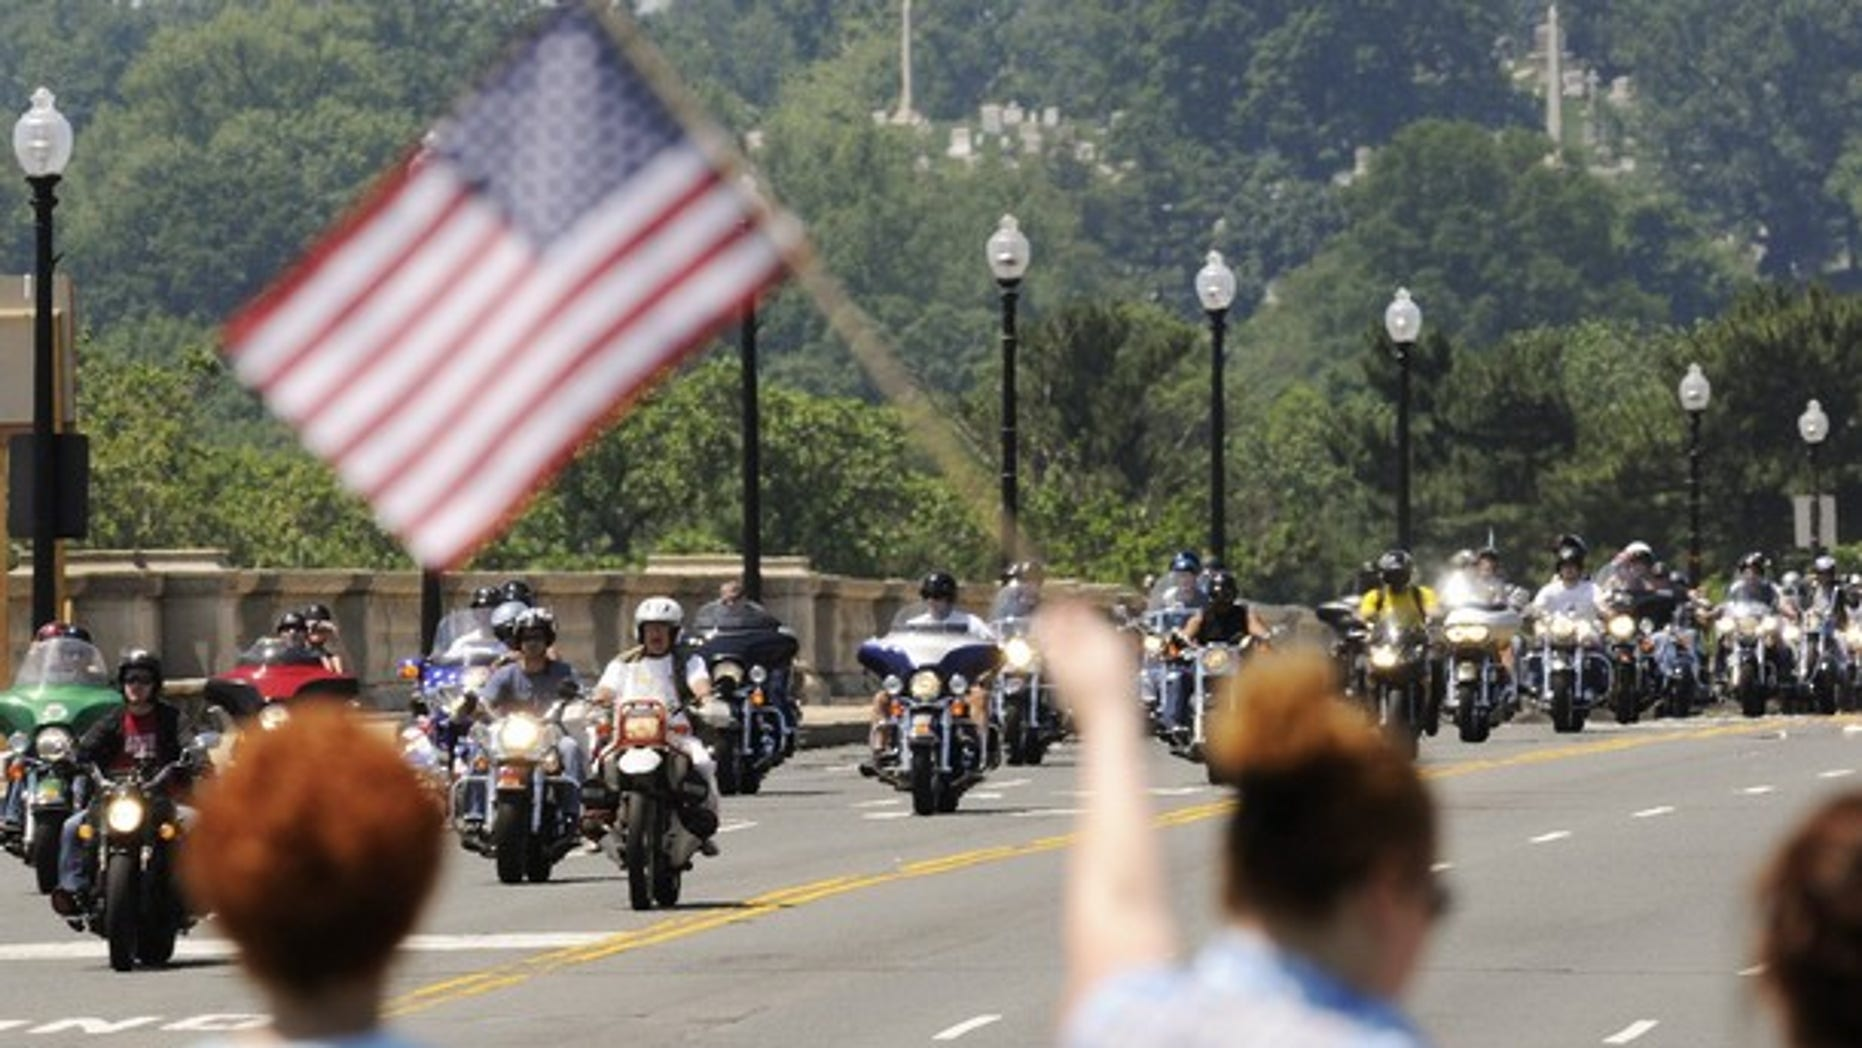 Motorcycle riders take part in the annual Rolling Thunder demonstration, crossing the Memorial Bridge in front of Arlington Cemetery to pay their respects at the Vietnam Veterans Memorial in Washington, May 30, 2010. (Reuters)